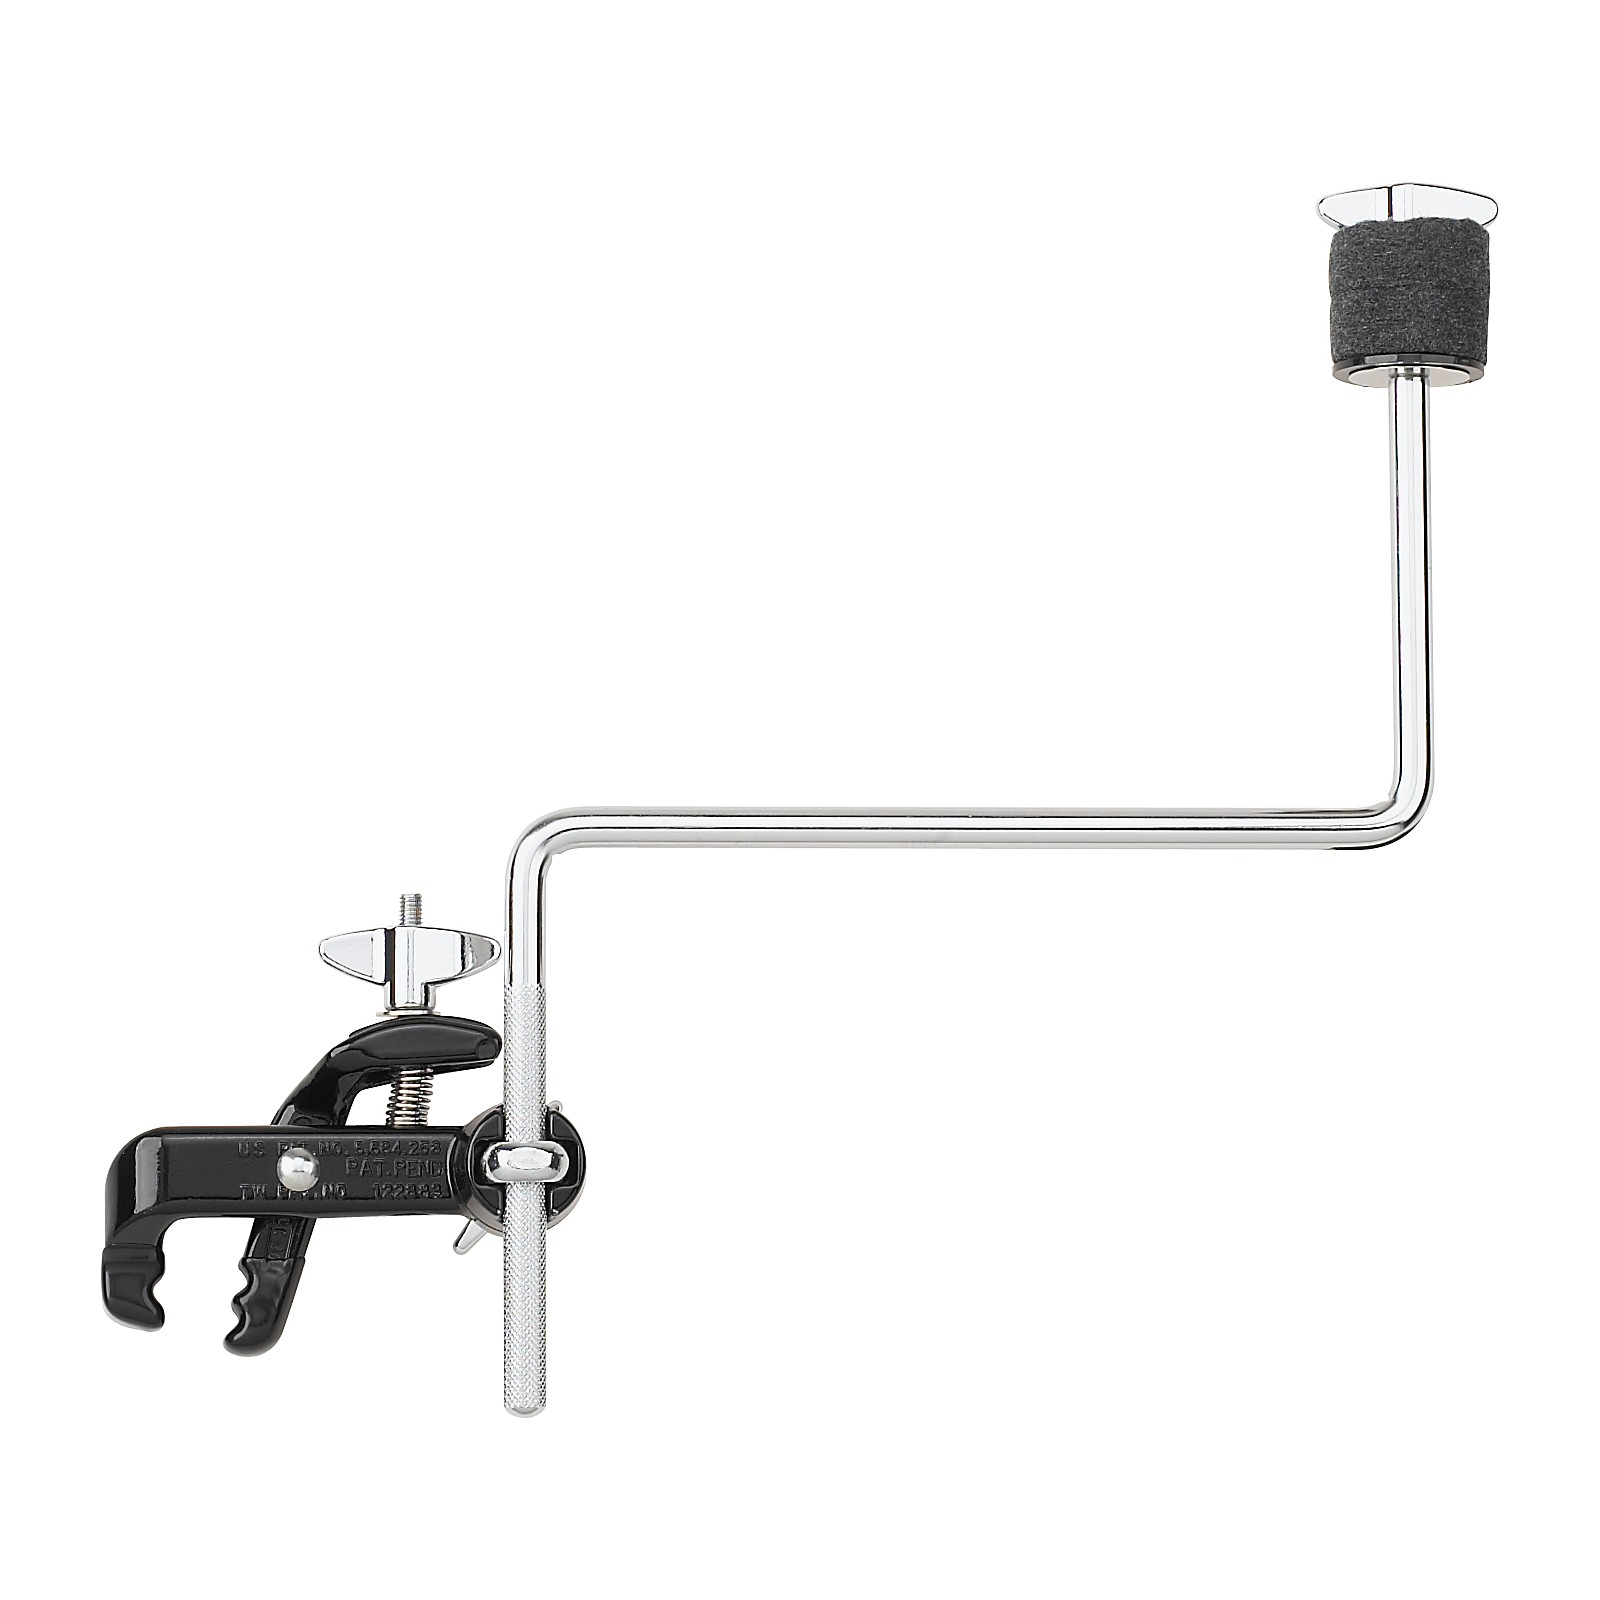 Sound Percussion Labs SPC24 Jaw Cymbal Mount